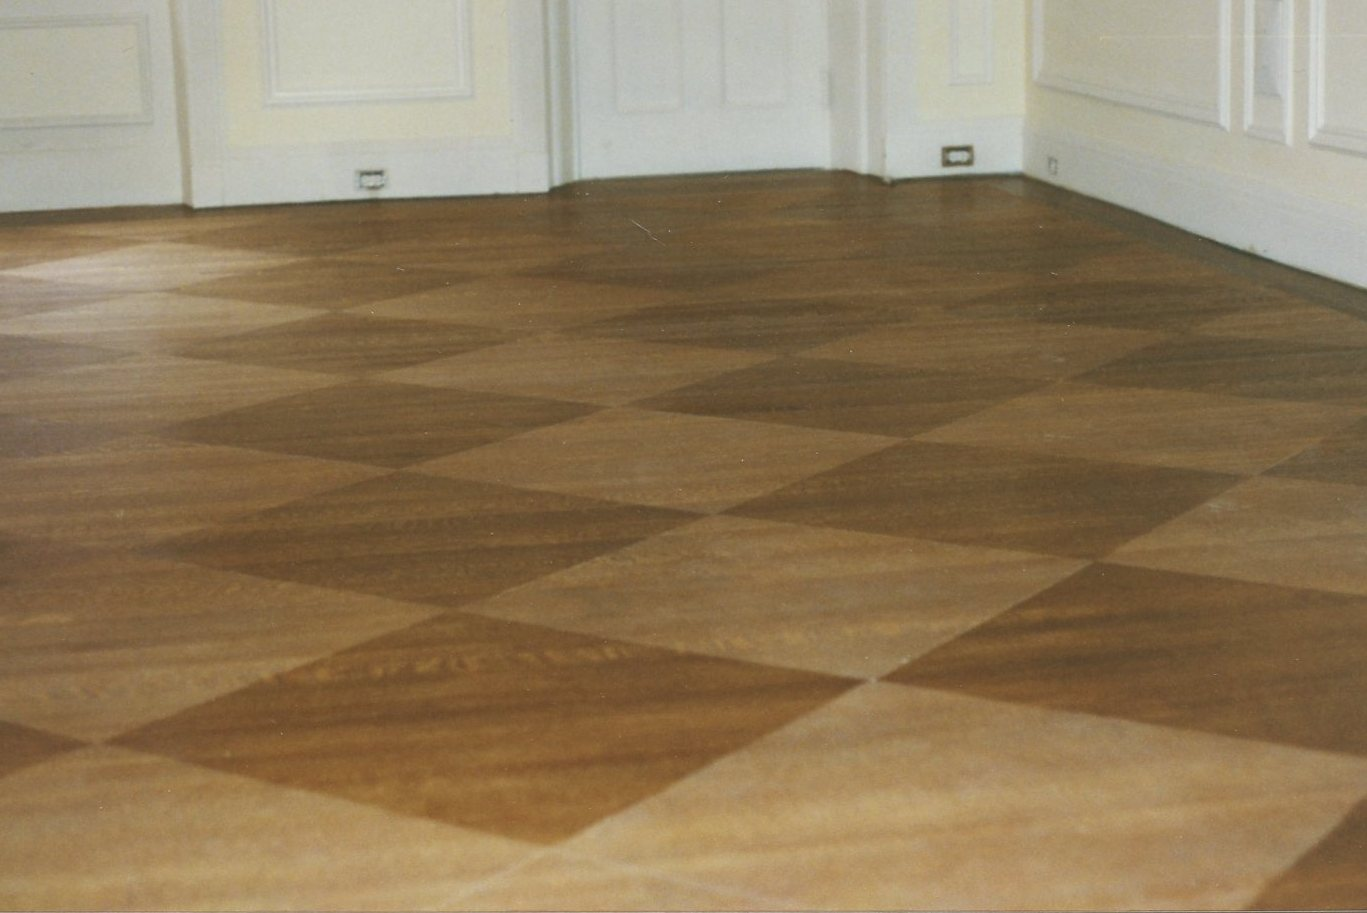 Stained hardwood floors duffyfloors for Hardwood flooring